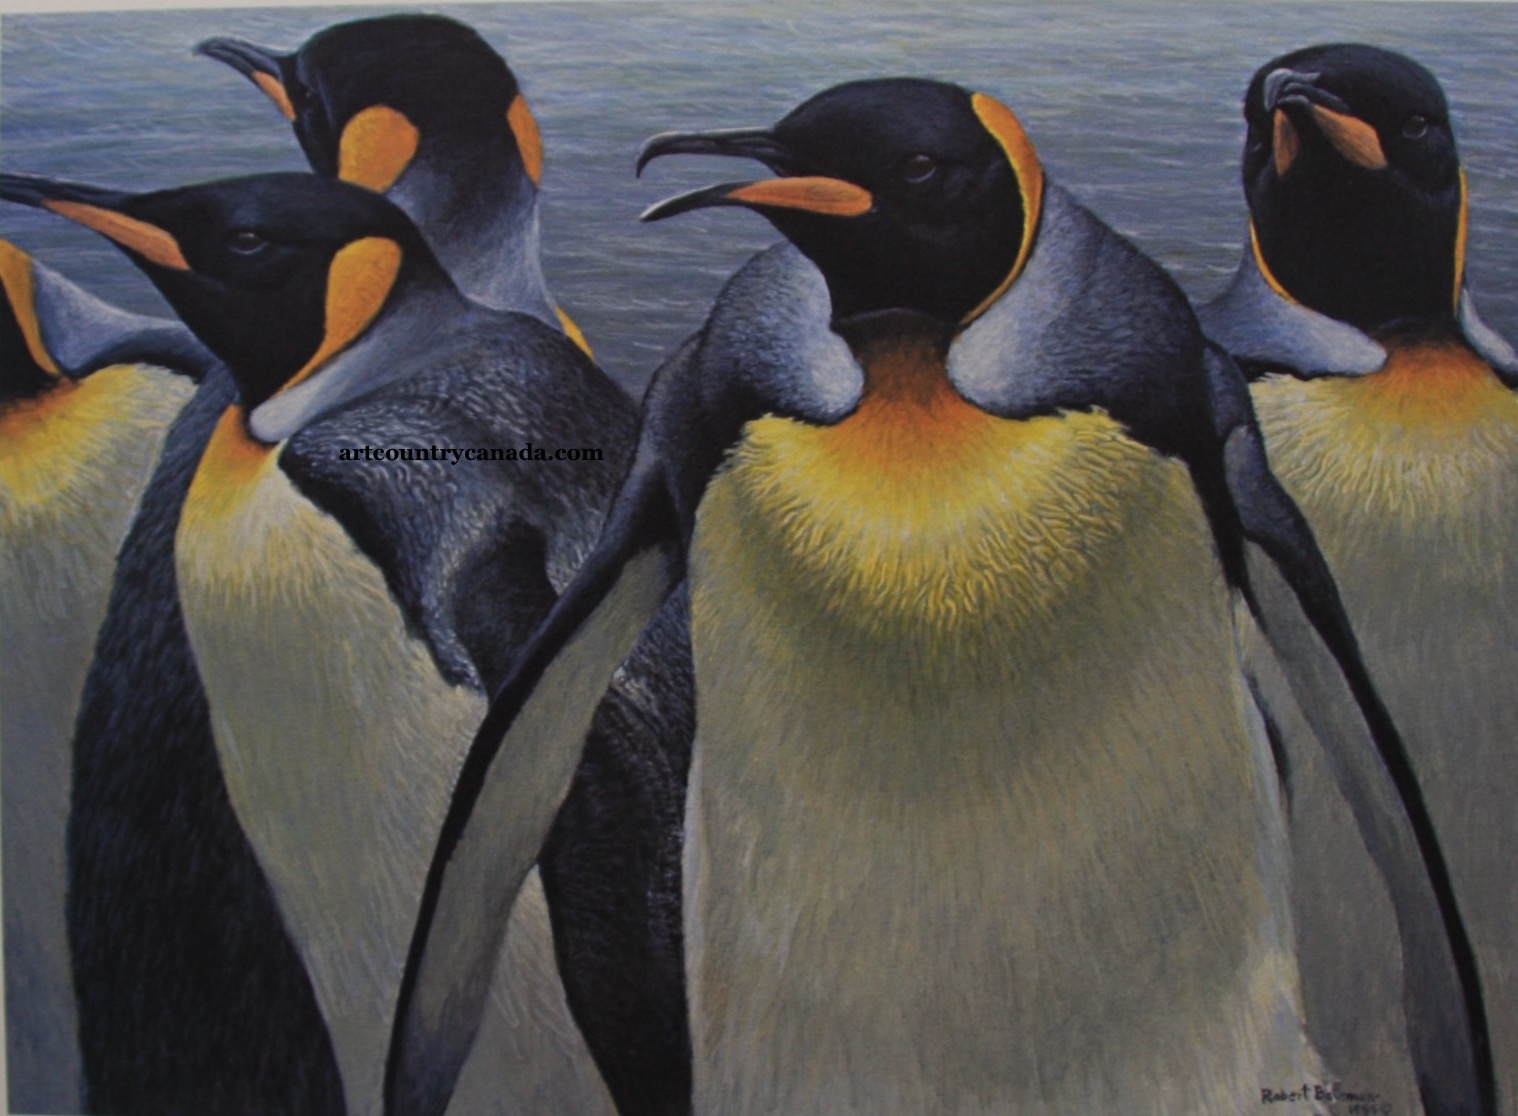 Robert bateman King Penguins